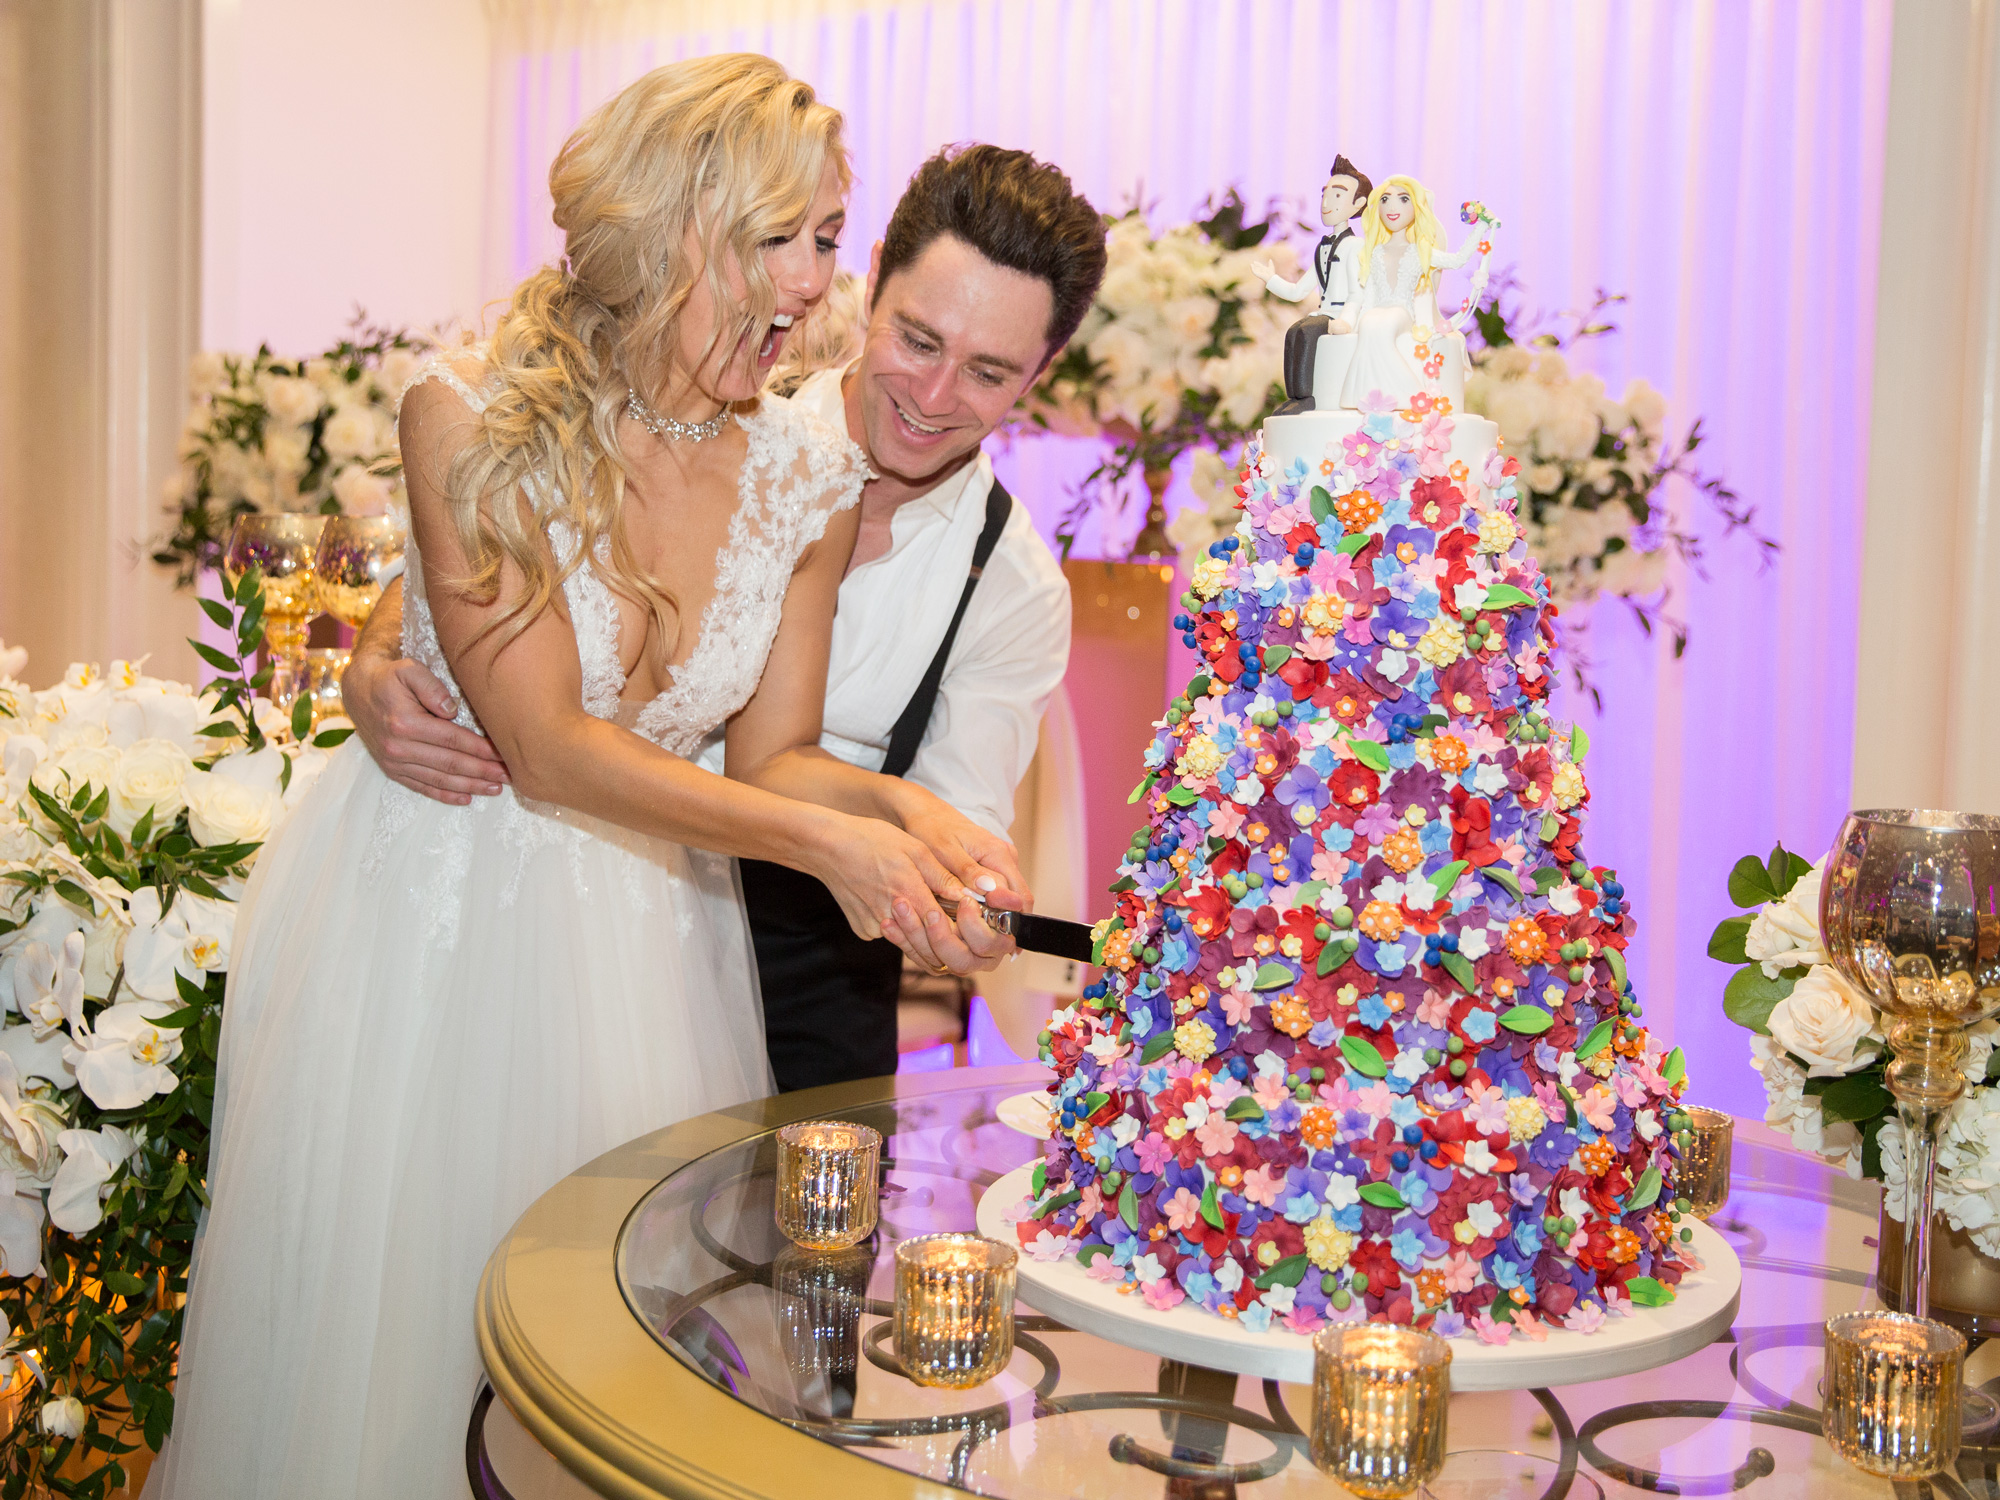 Emma Slater and Sasha Farber Share Their Complete Wedding ...